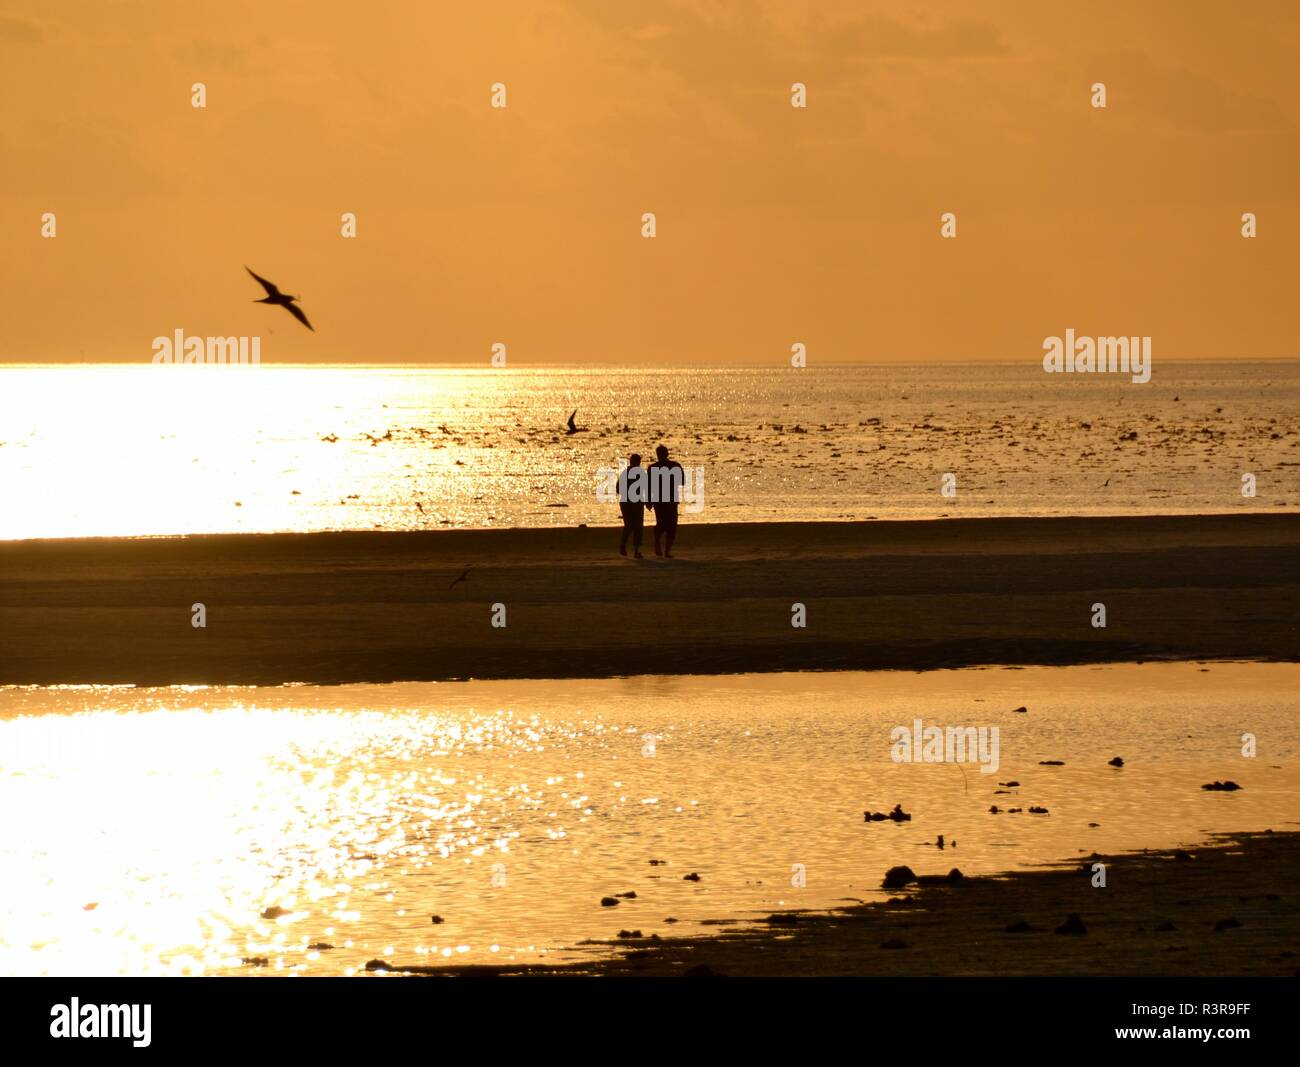 Two lovers strolling on a sandbar in golden sunset evening light on the Great Barrier Reef in Australia - Stock Image